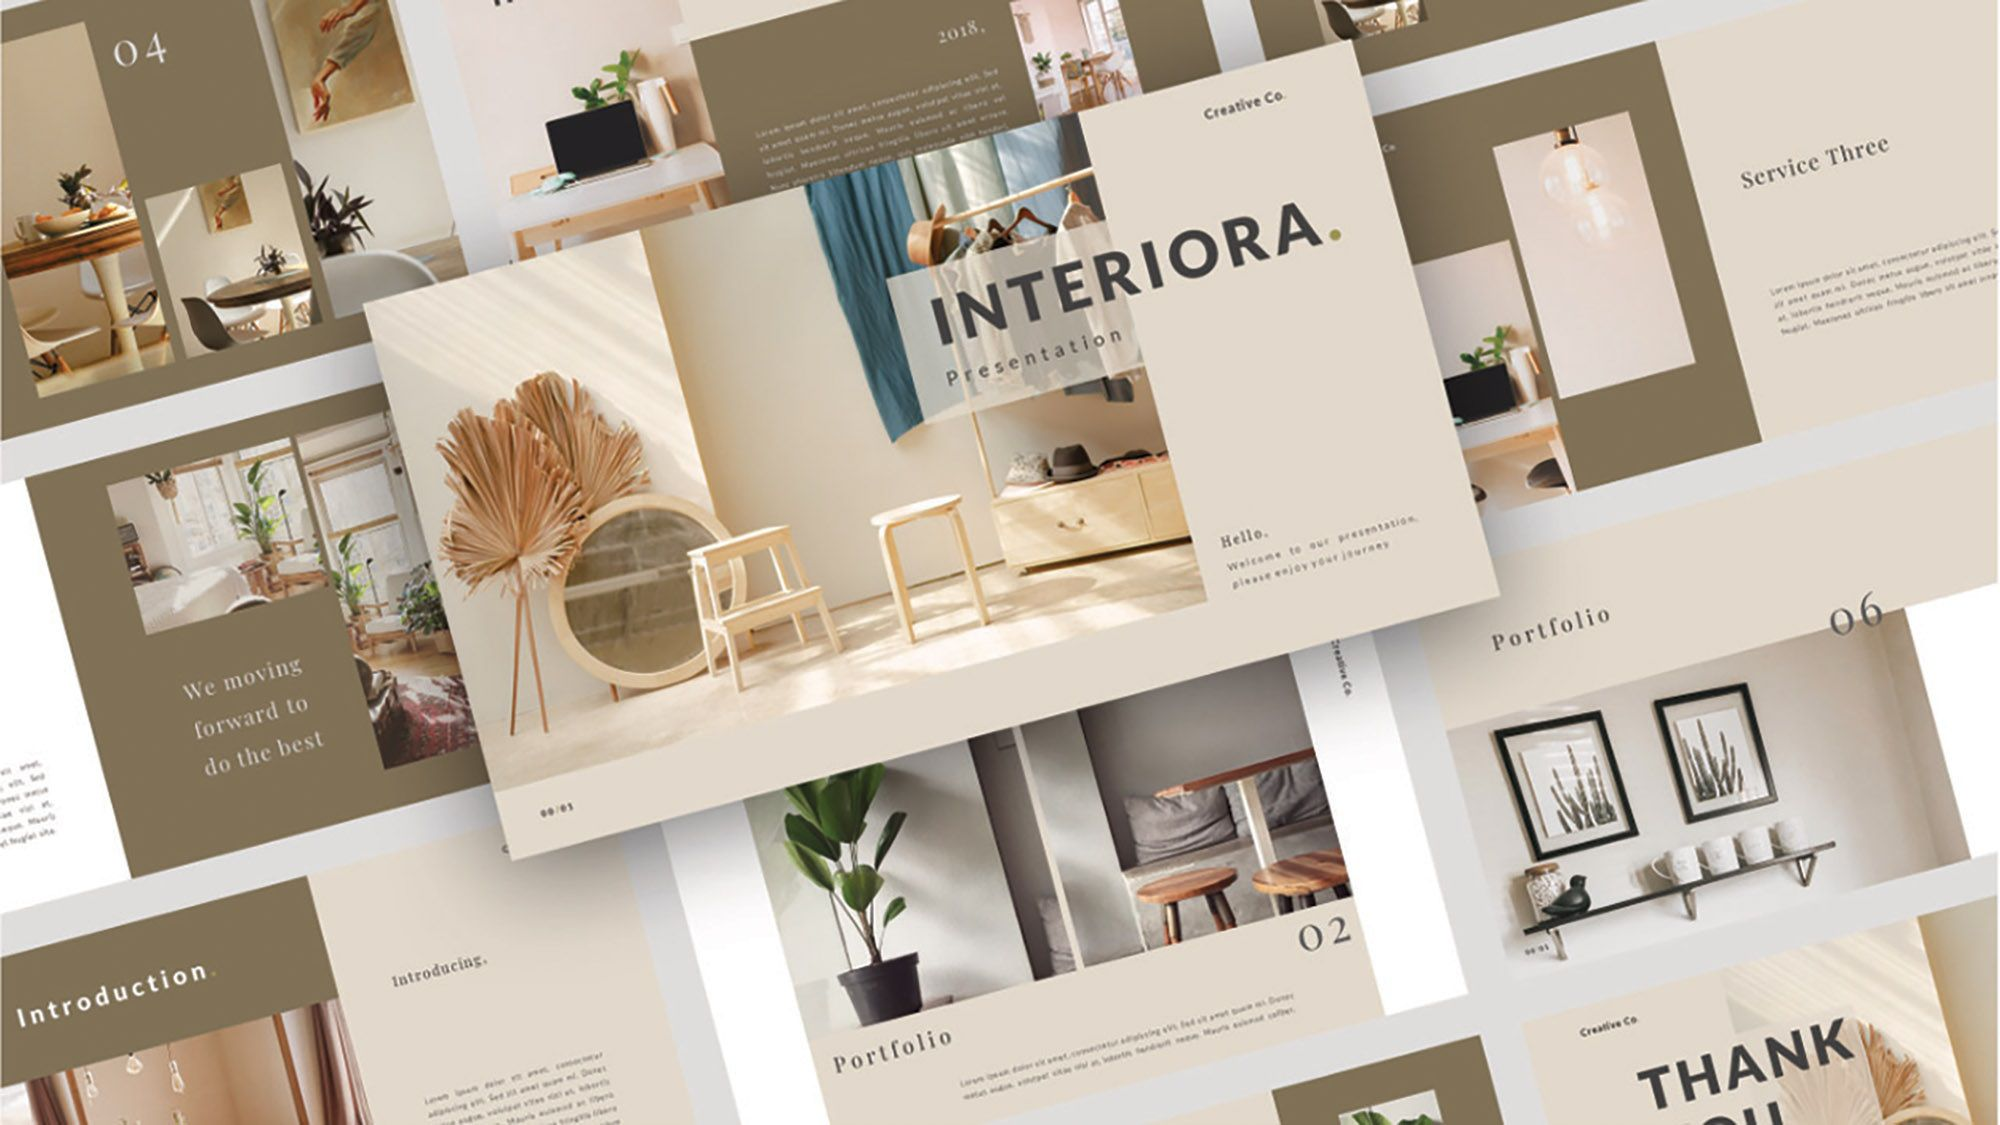 008 Phenomenal Interior Design Portfolio Template Image  Ppt Free Download LayoutFull